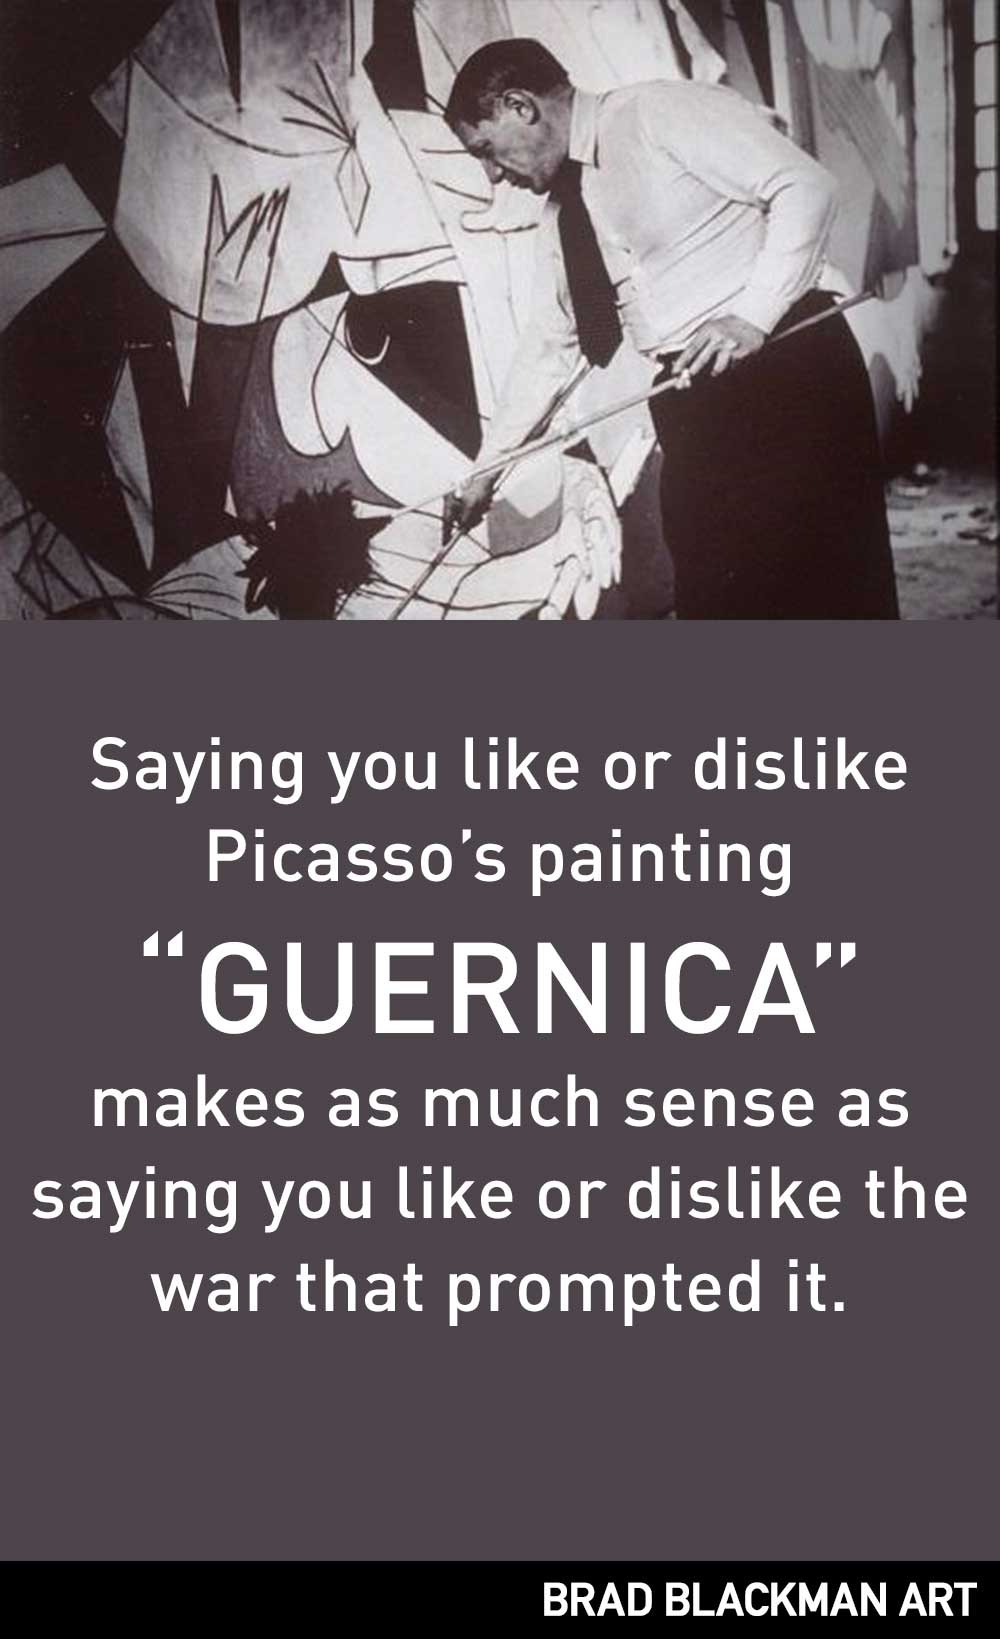 Saying you like or dislike Picasso's painting GUERNICA makes as much sense as saying you like or dislike the war that prompted it.